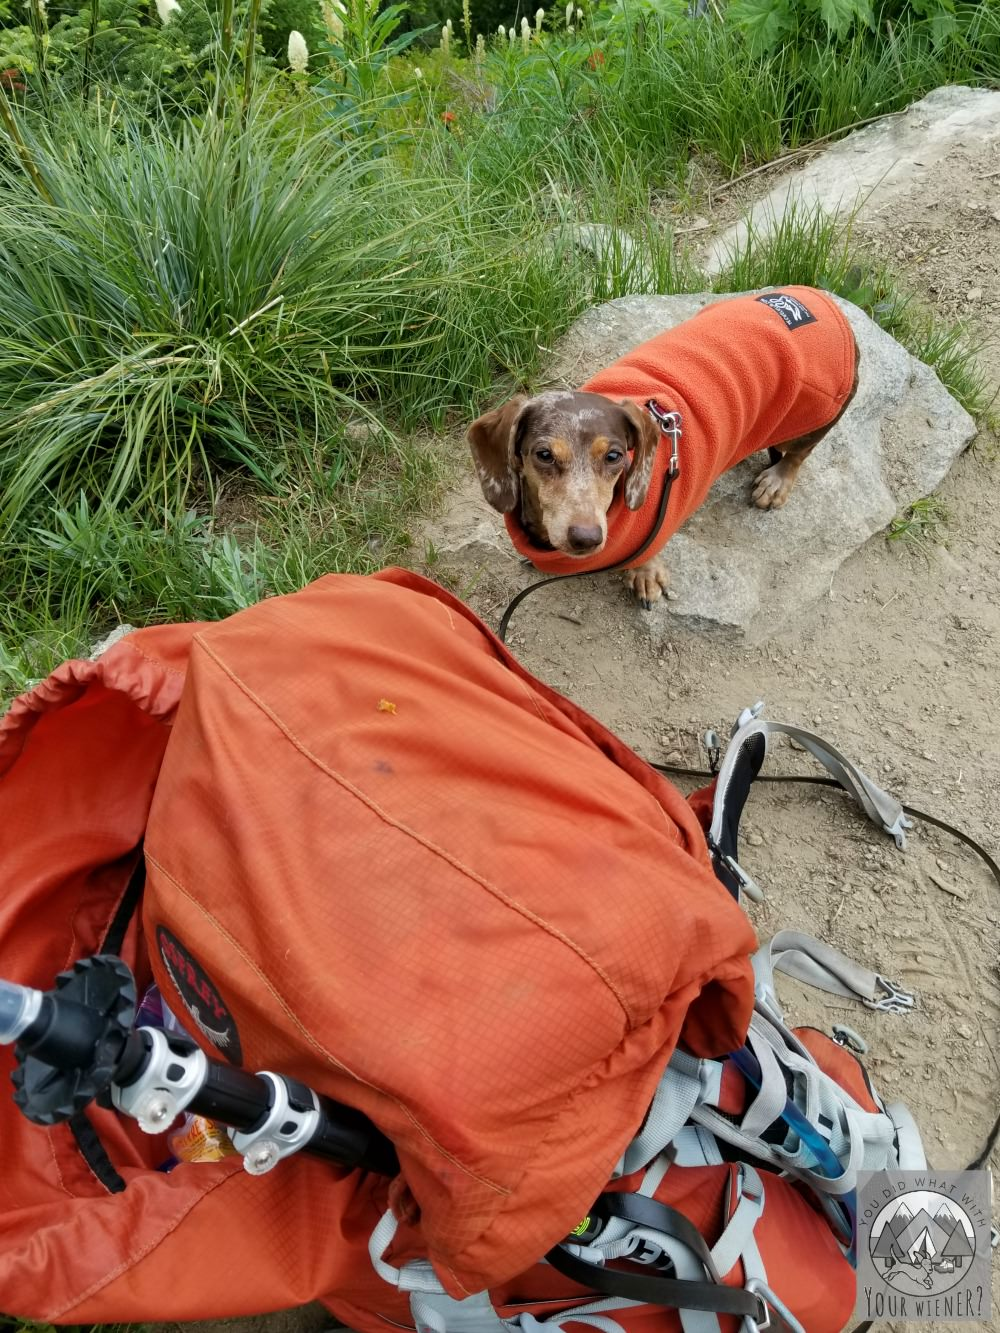 Dachshunds make great adventure and hiking companions